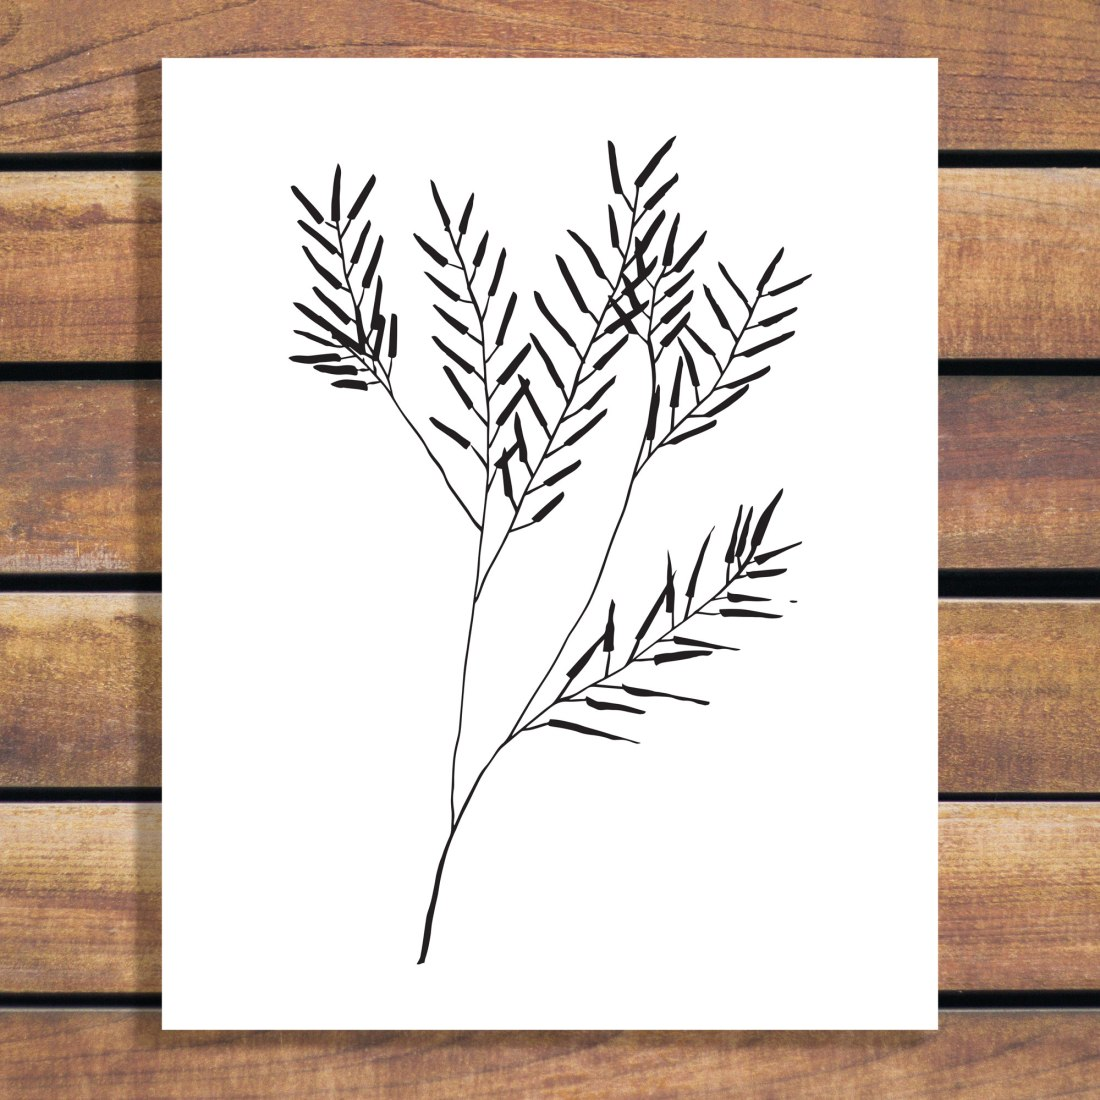 Regrowth, Simple Branch Illustration Art Print by Brina Schenk - Download vector art - wall art